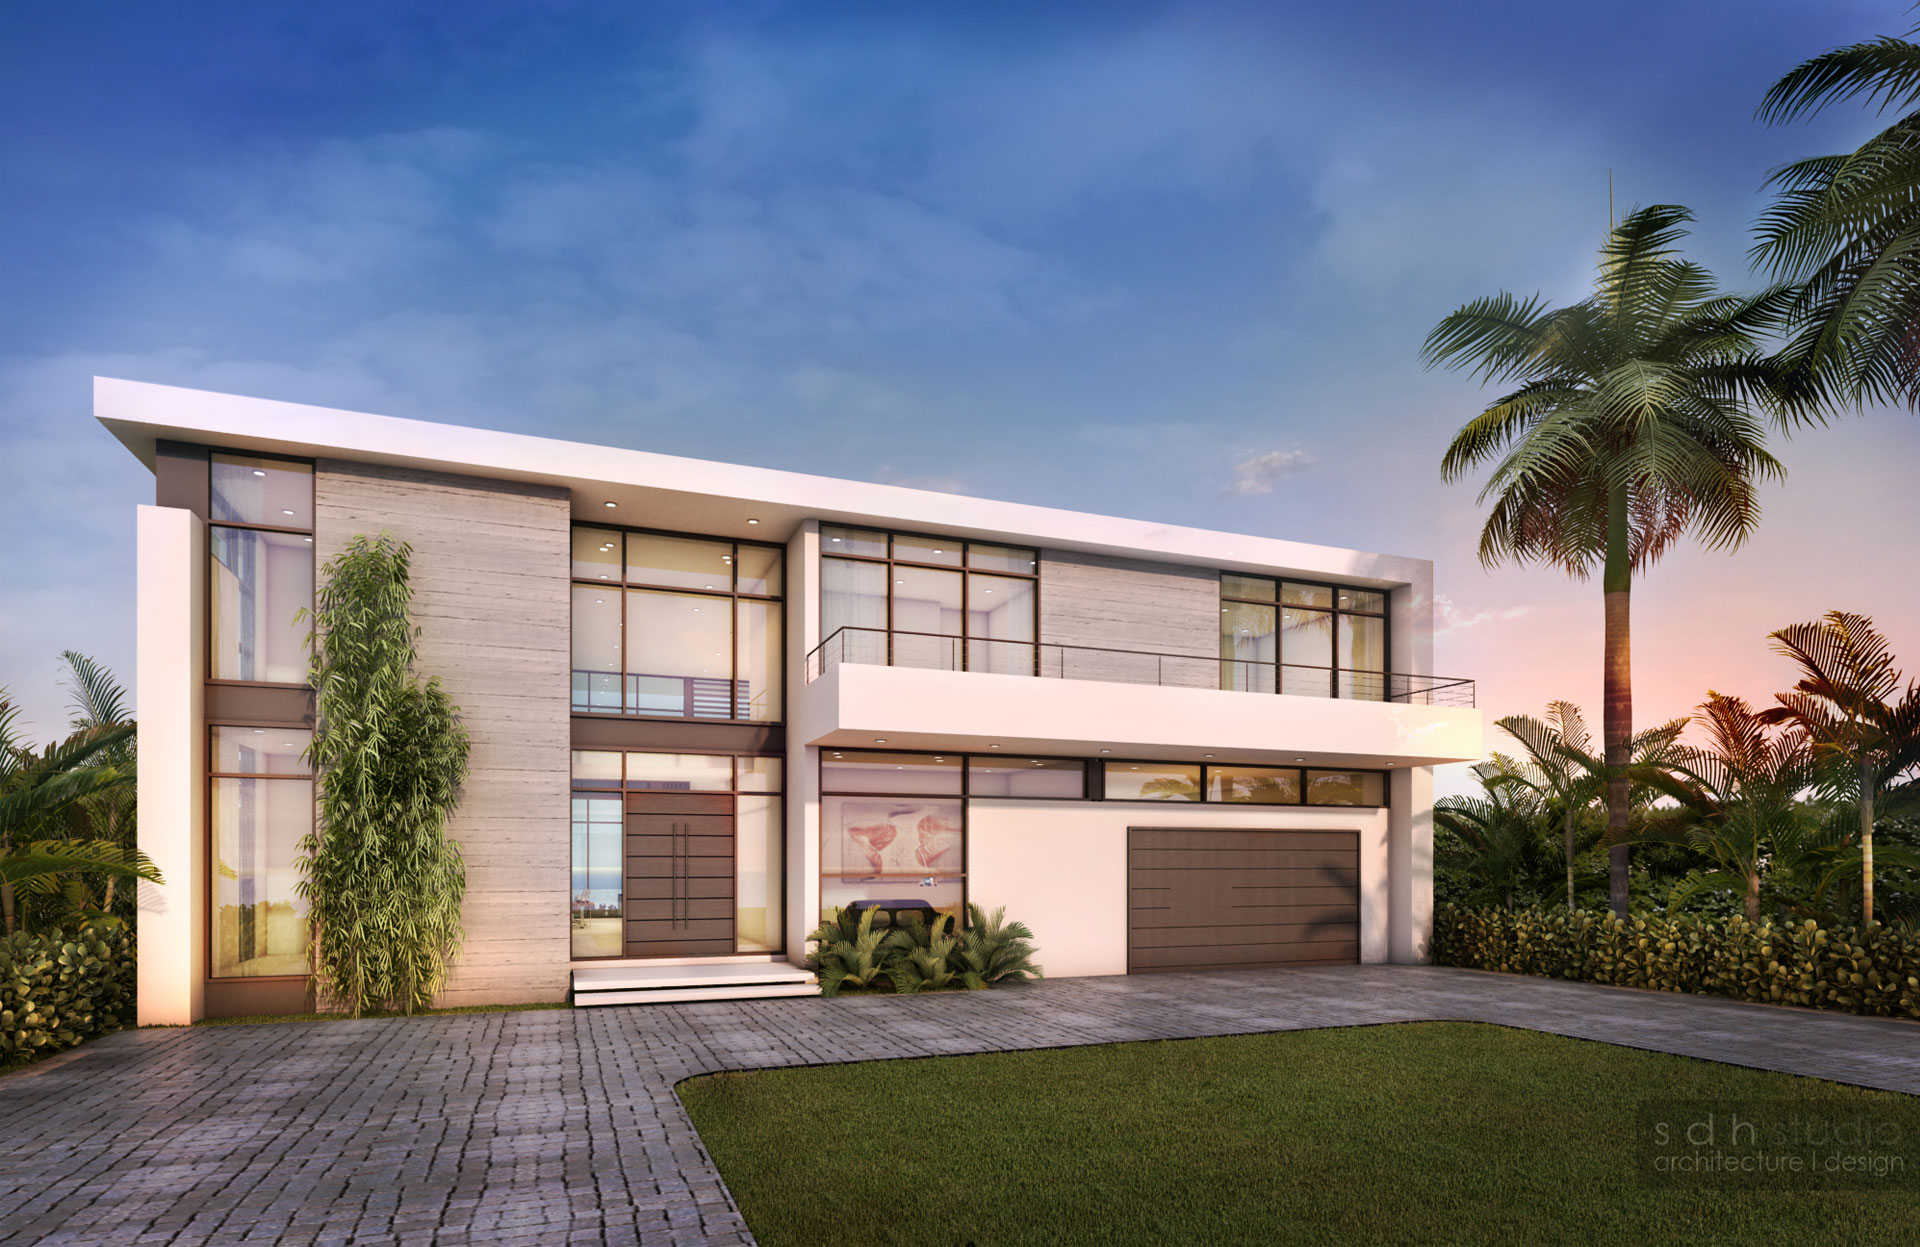 Exterior Architect front view project in Eastern Shores, Florida